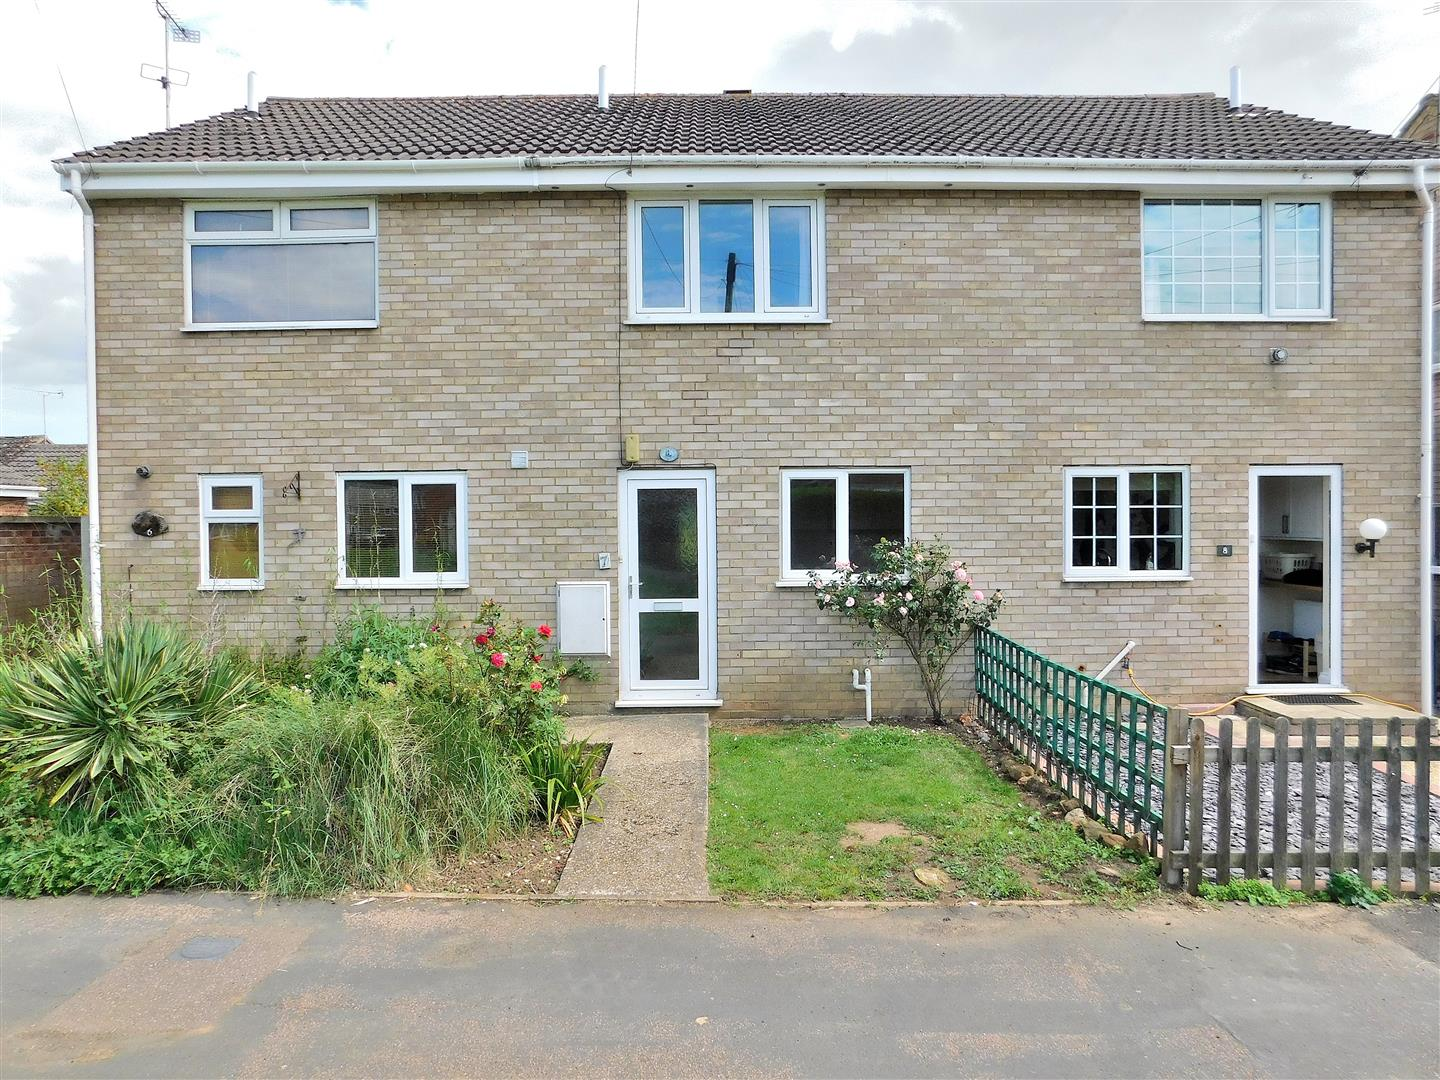 2 bed terraced house for sale in King's Lynn, PE31 7JN - Property Image 1